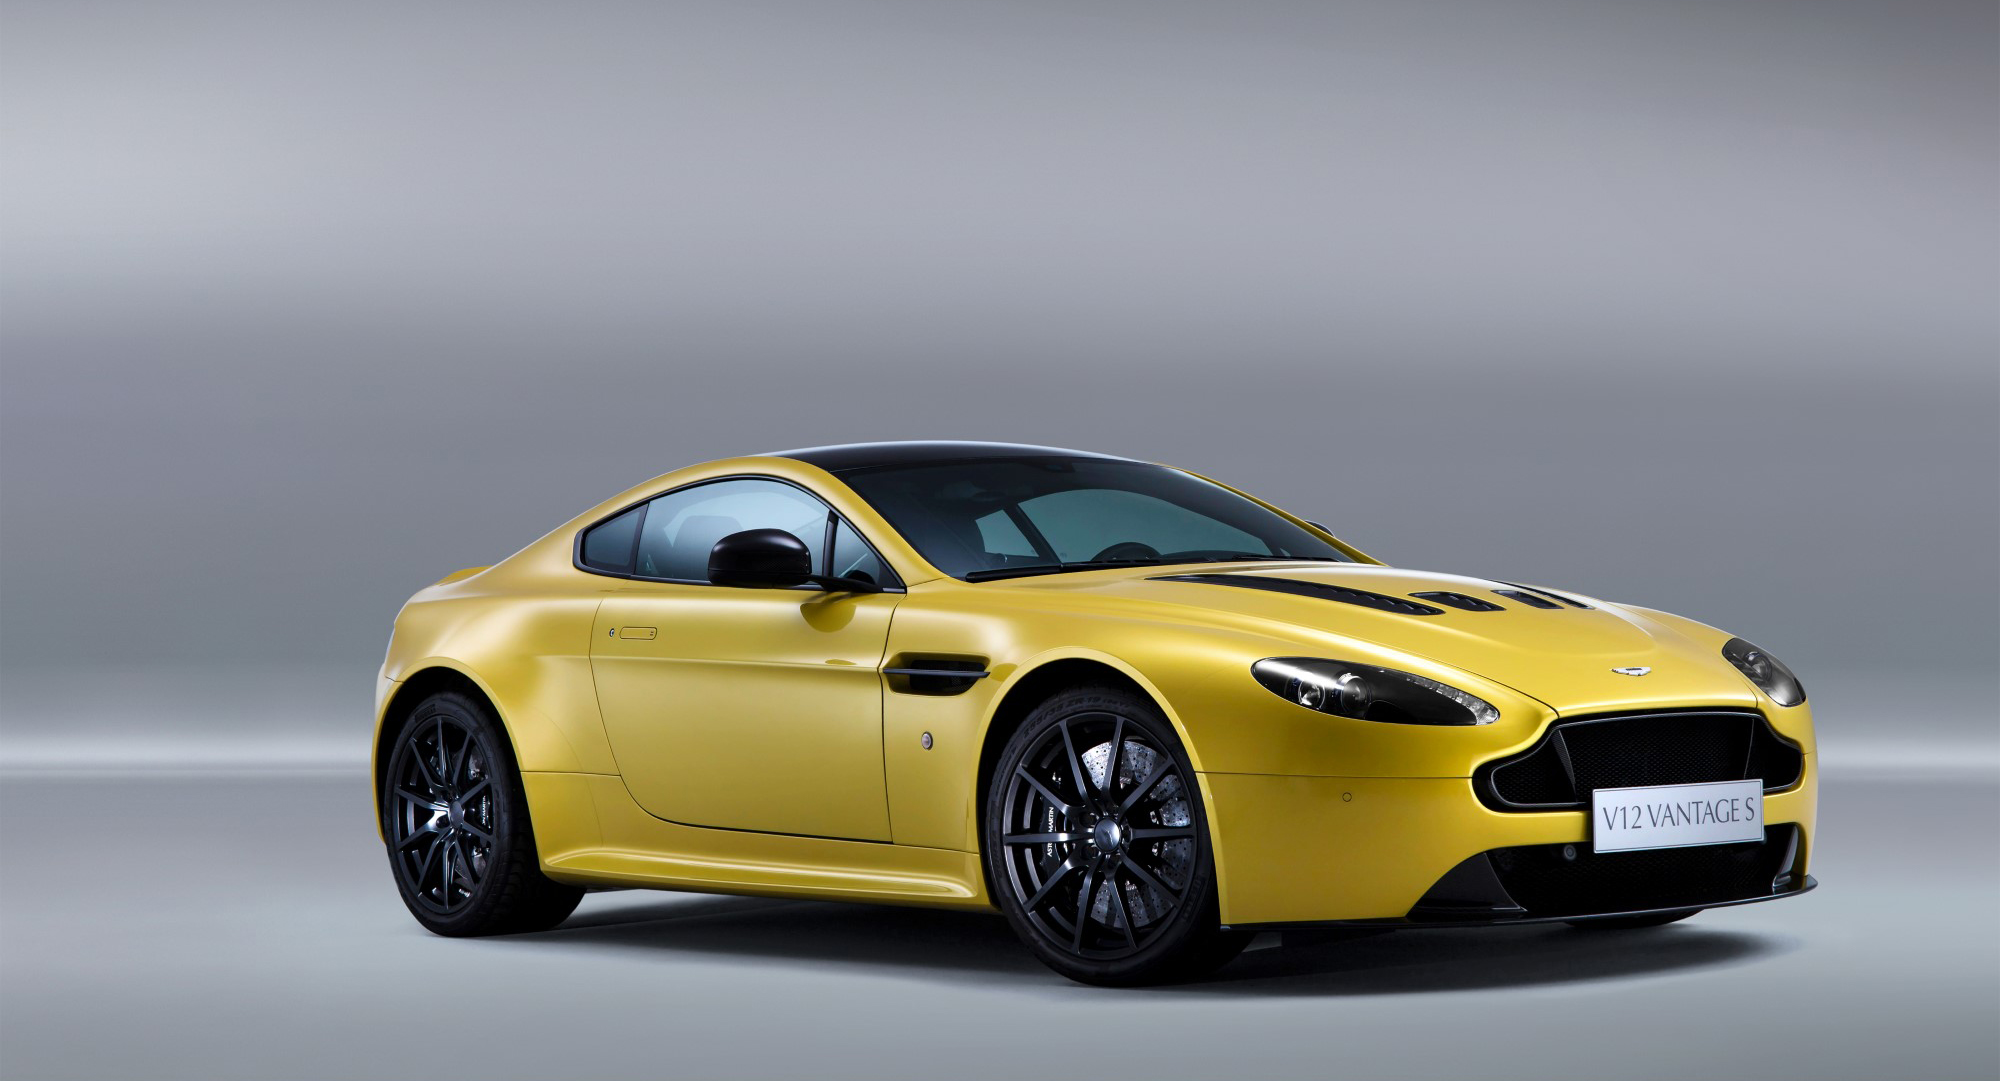 2013 aston martin v12 vantage 100428743. Black Bedroom Furniture Sets. Home Design Ideas